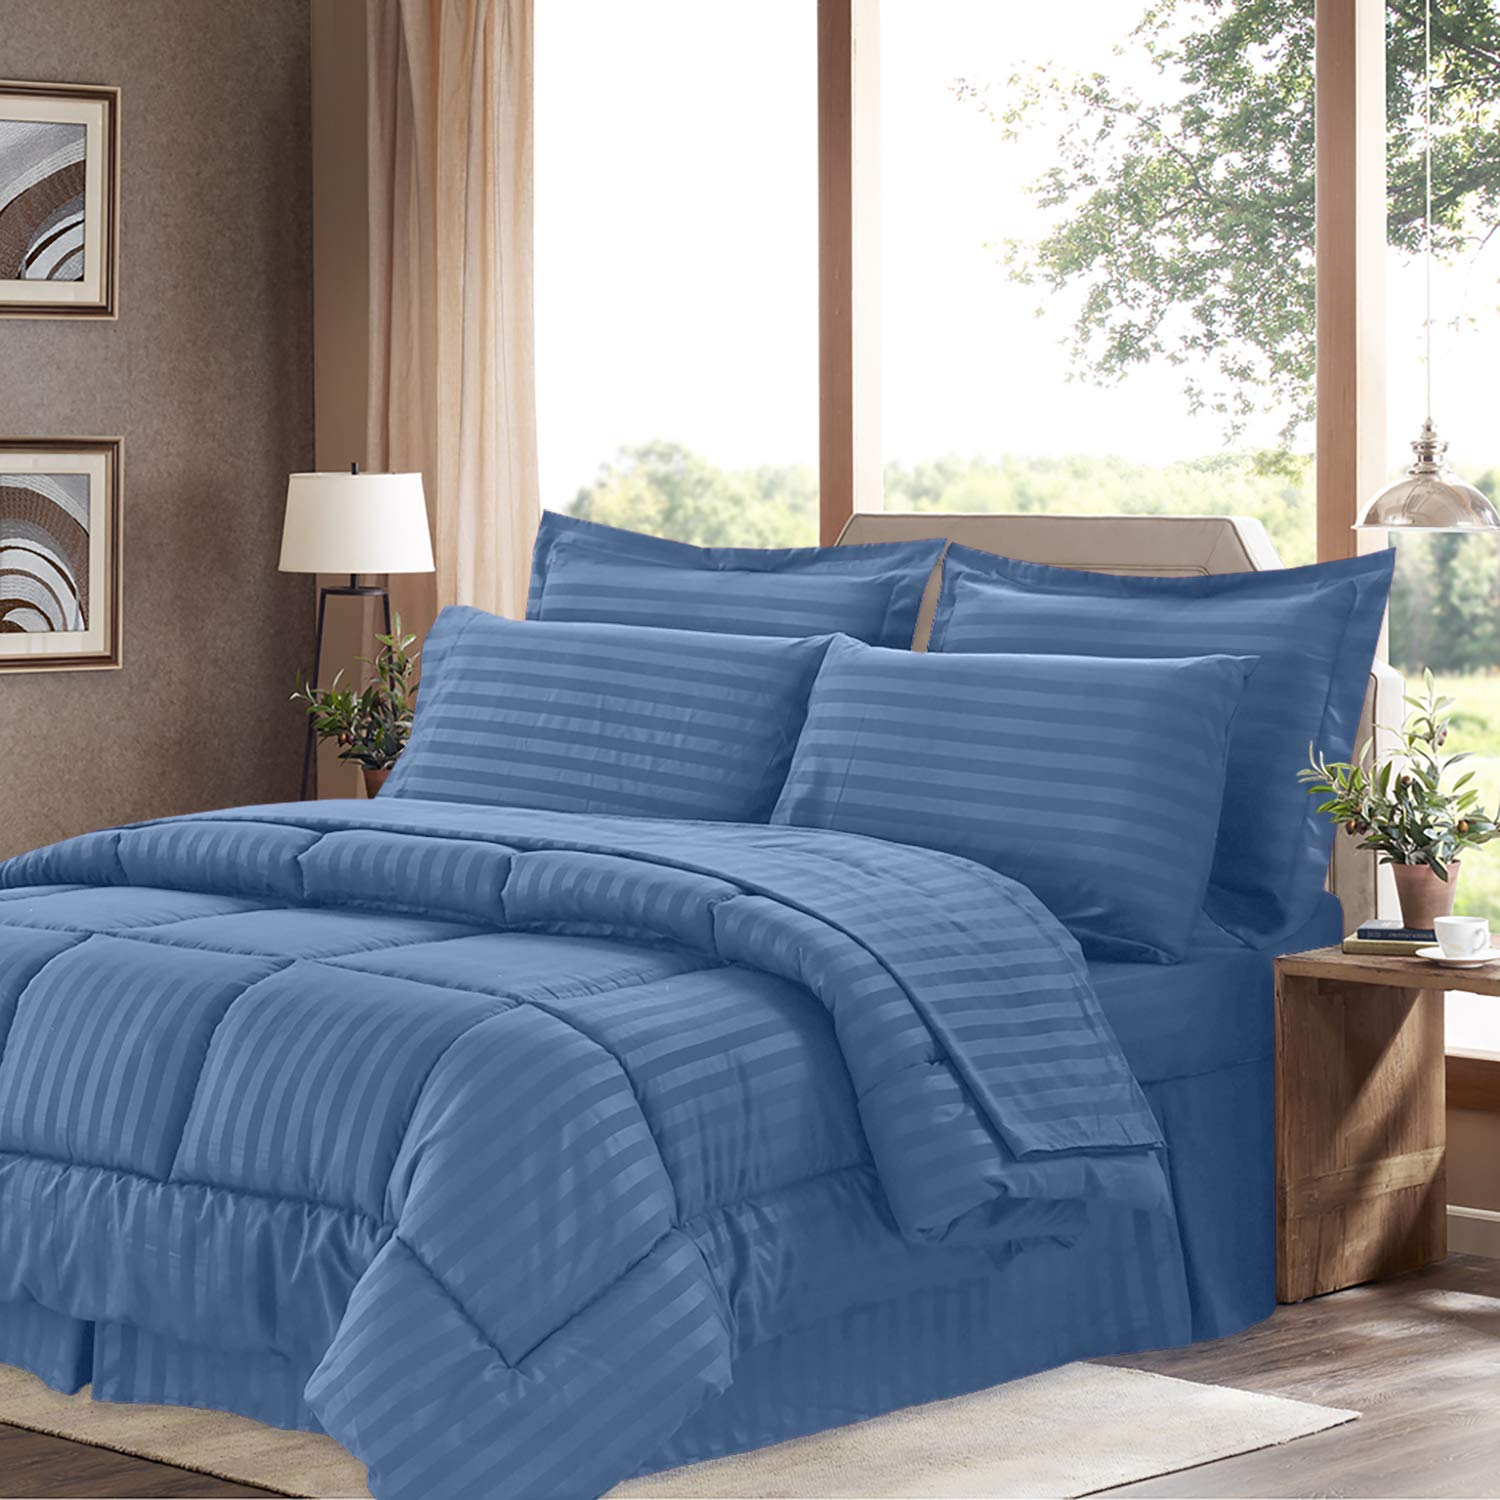 Sweet Home Collection 8 Piece Comforter Set Bag with Dobby Stripe Design, Bed Sheets, 2 Pillowcases, 2 Shams Down Alternative All Season Warmth, Queen, Denim